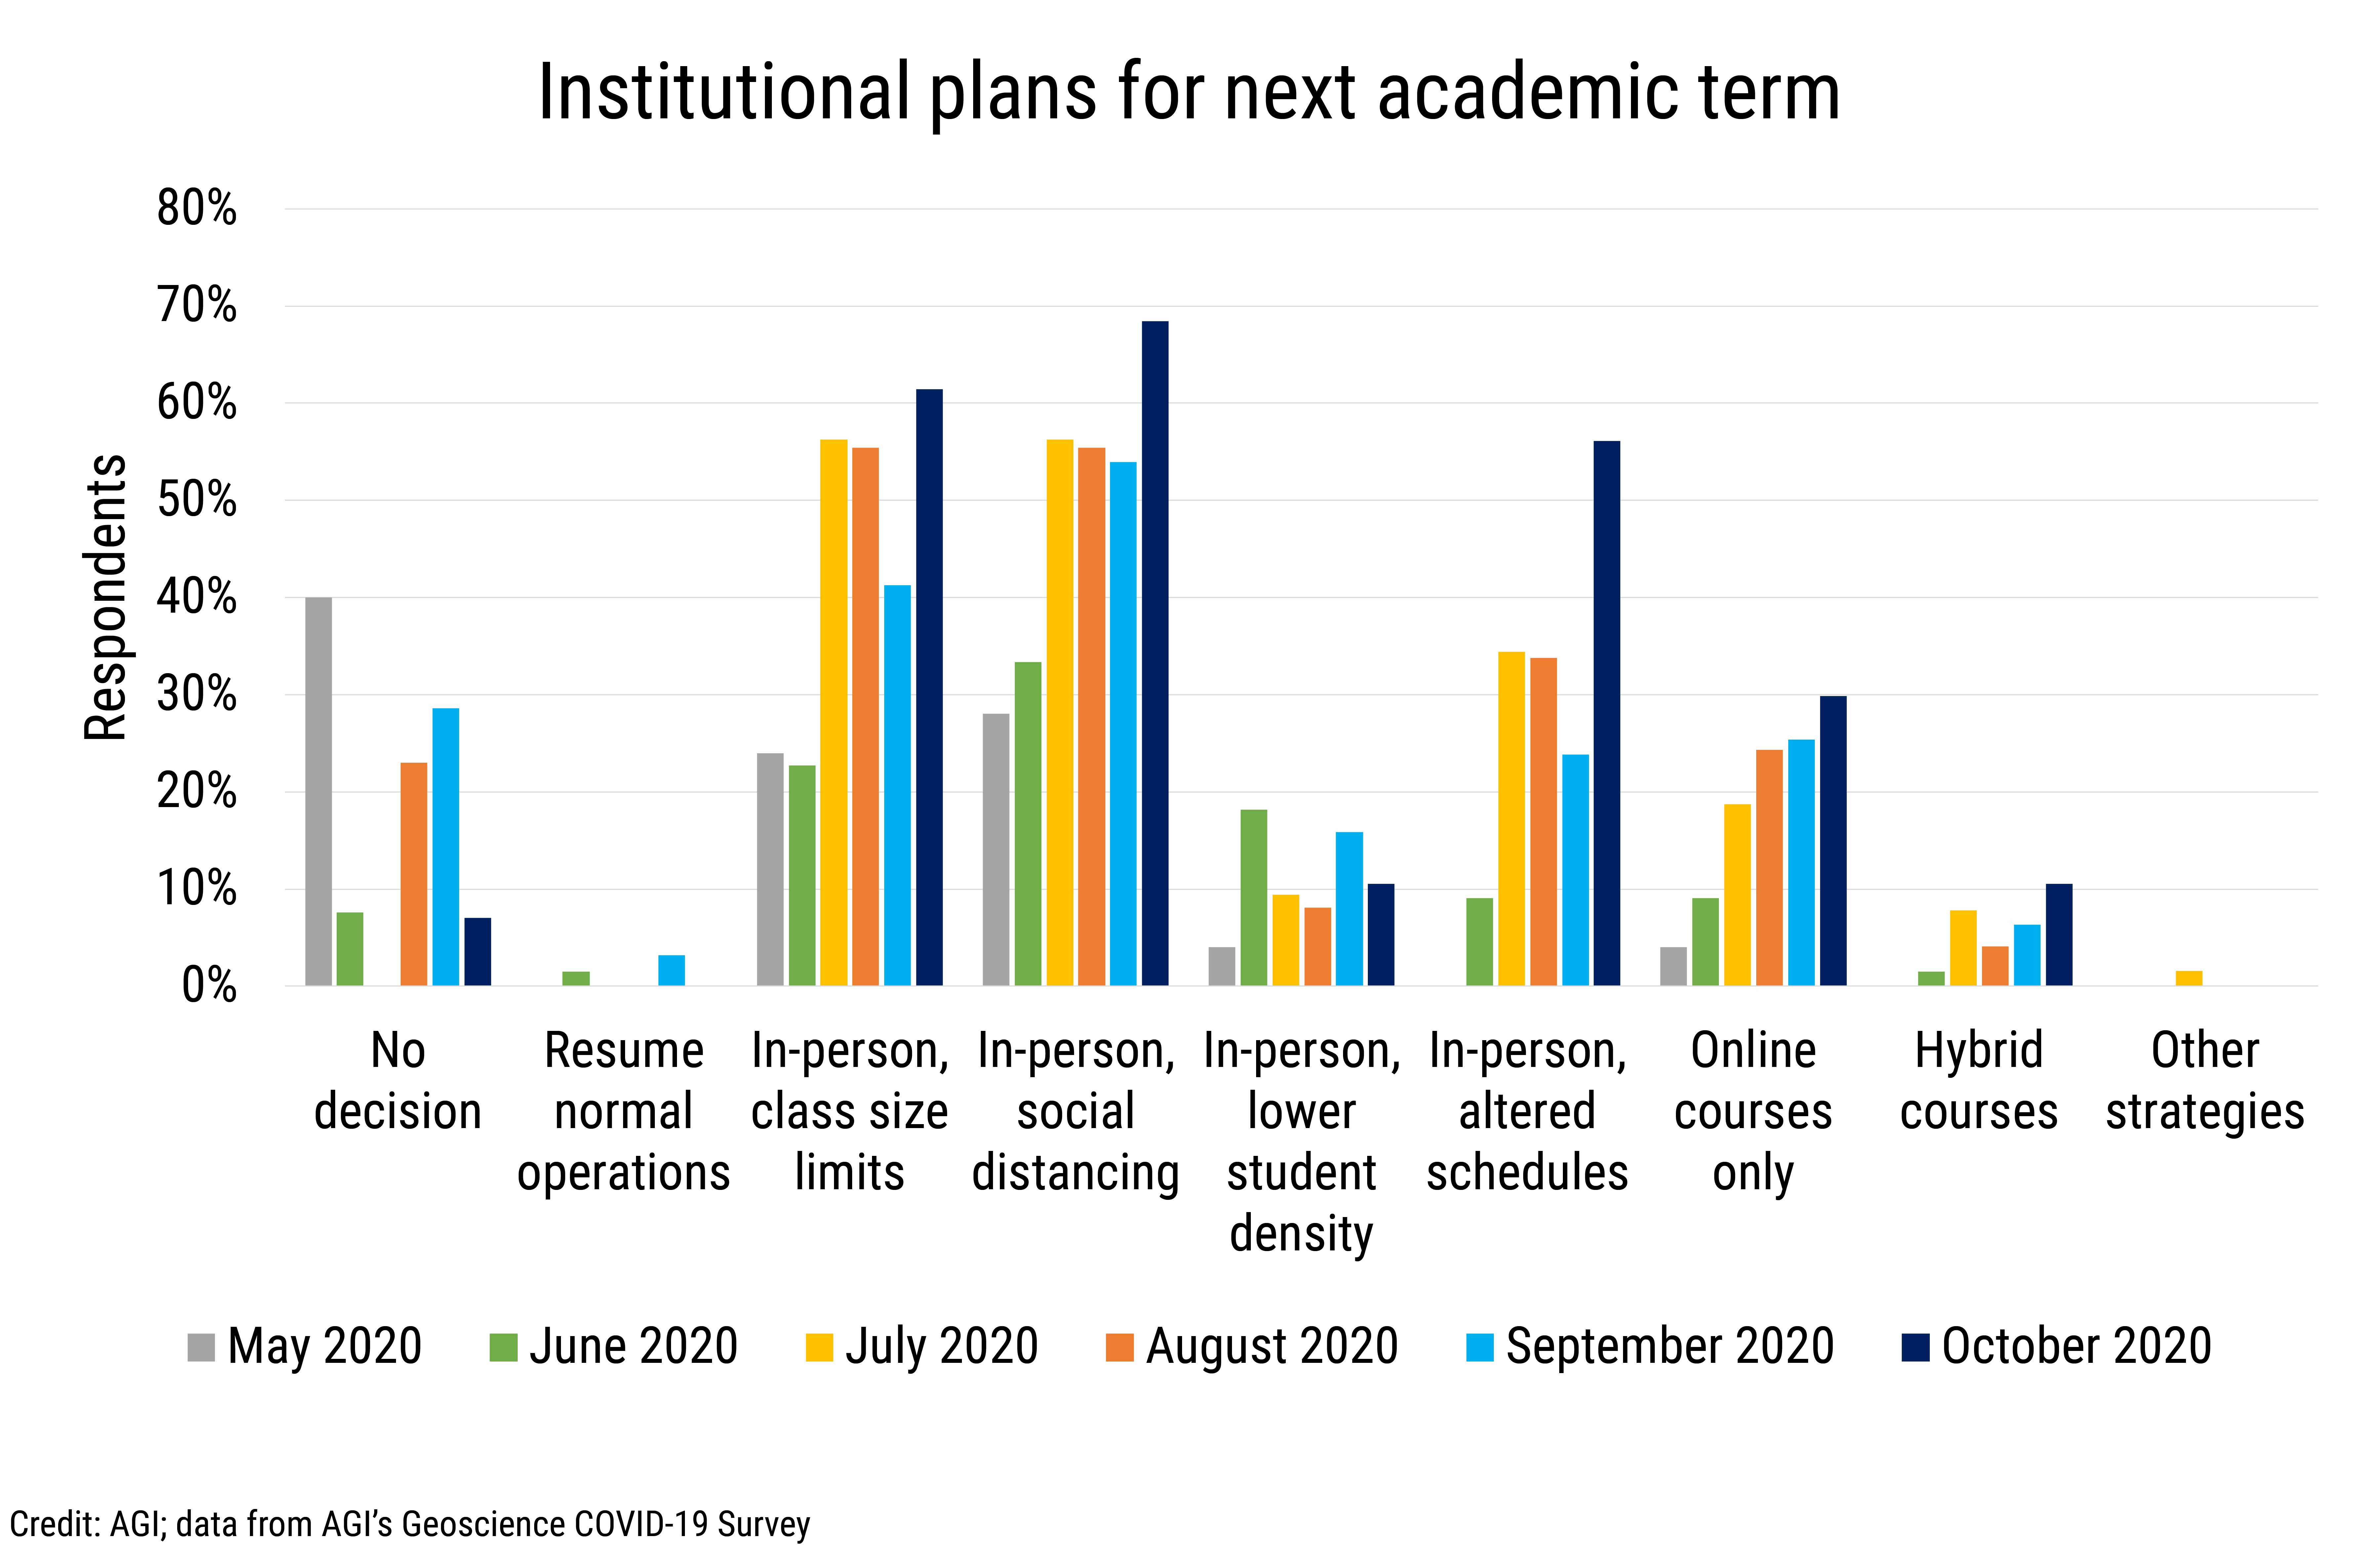 DB_2020-028 chart 07:  Institutional plans for next academic term (Credit: AGI; data from AGI's Geoscience COVID-19 Survey)